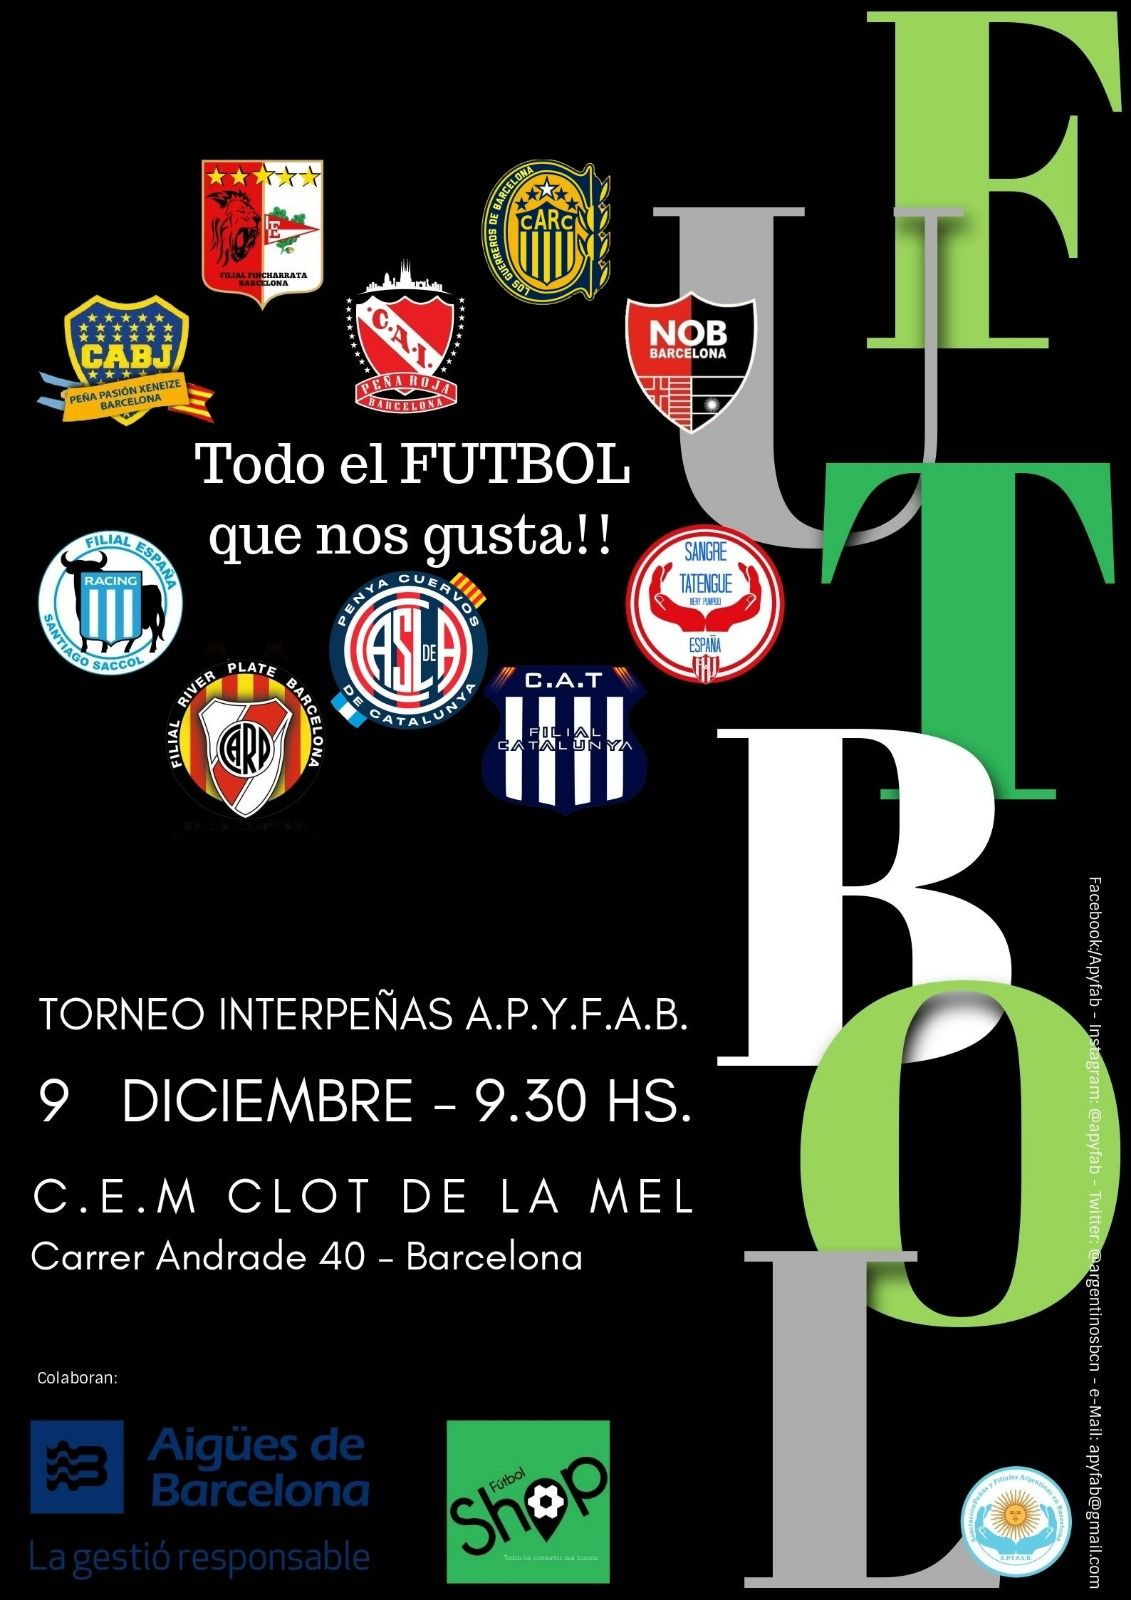 Torneo Interpenia